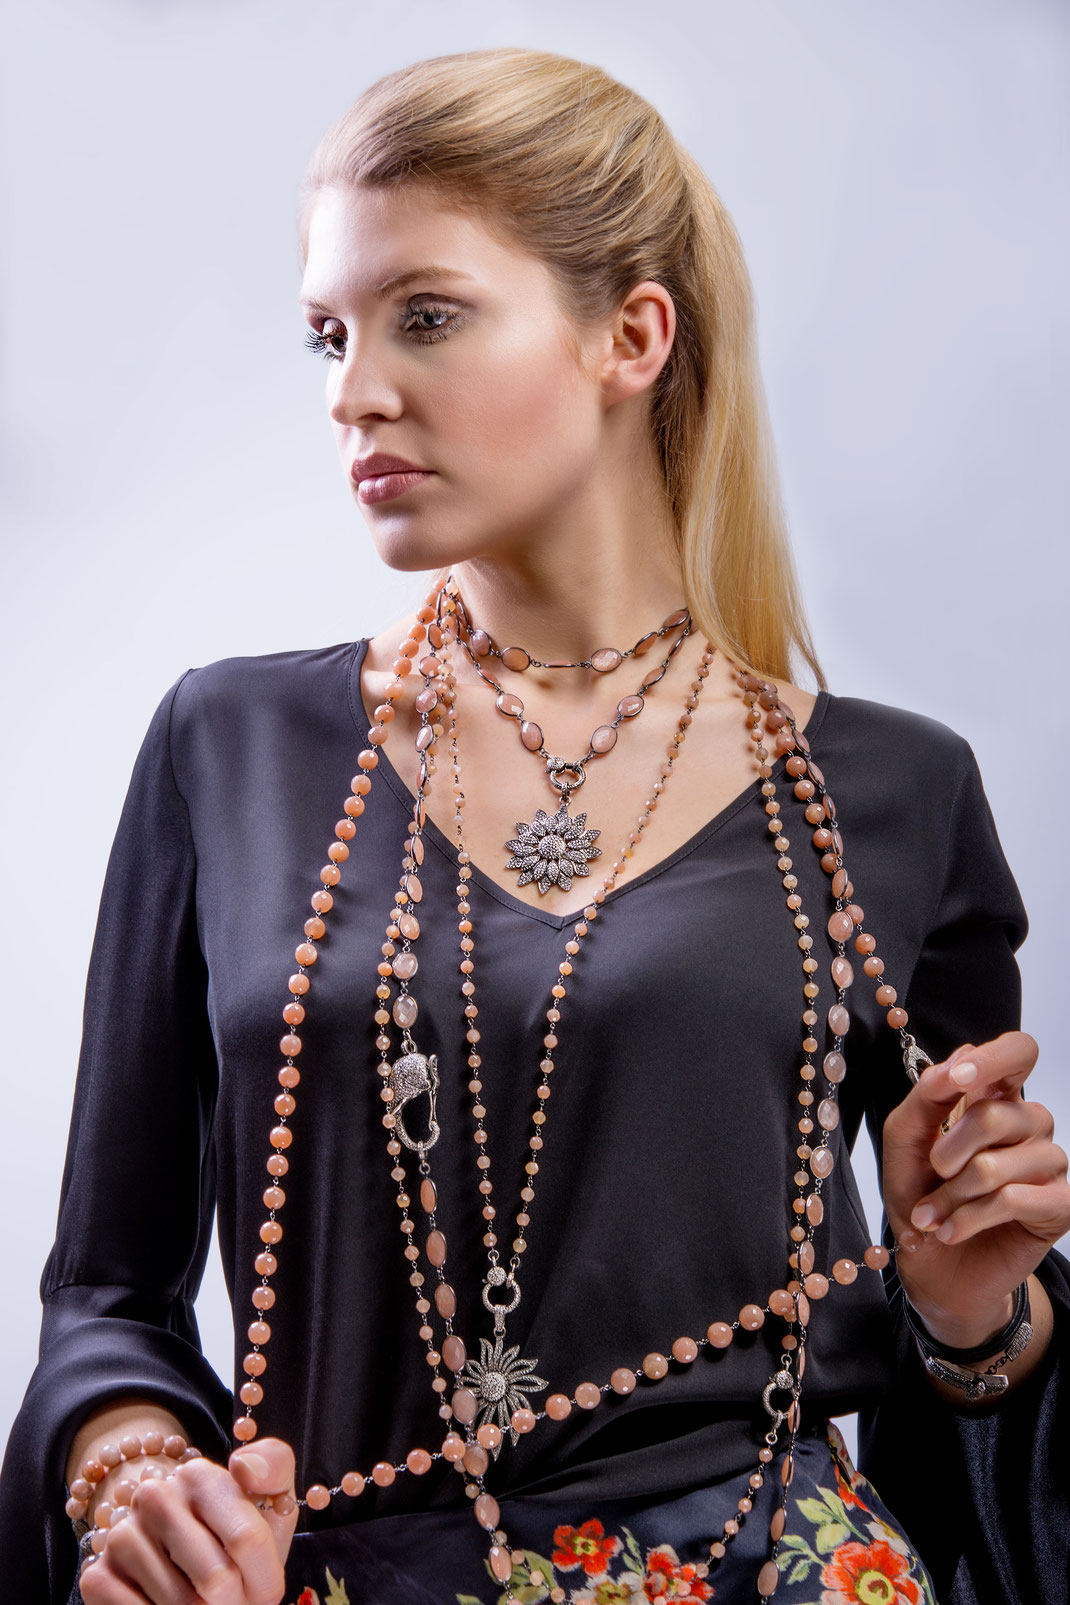 long casual elegant necklaces with grey diamonds and peach moonstone showing a strong boho vibe